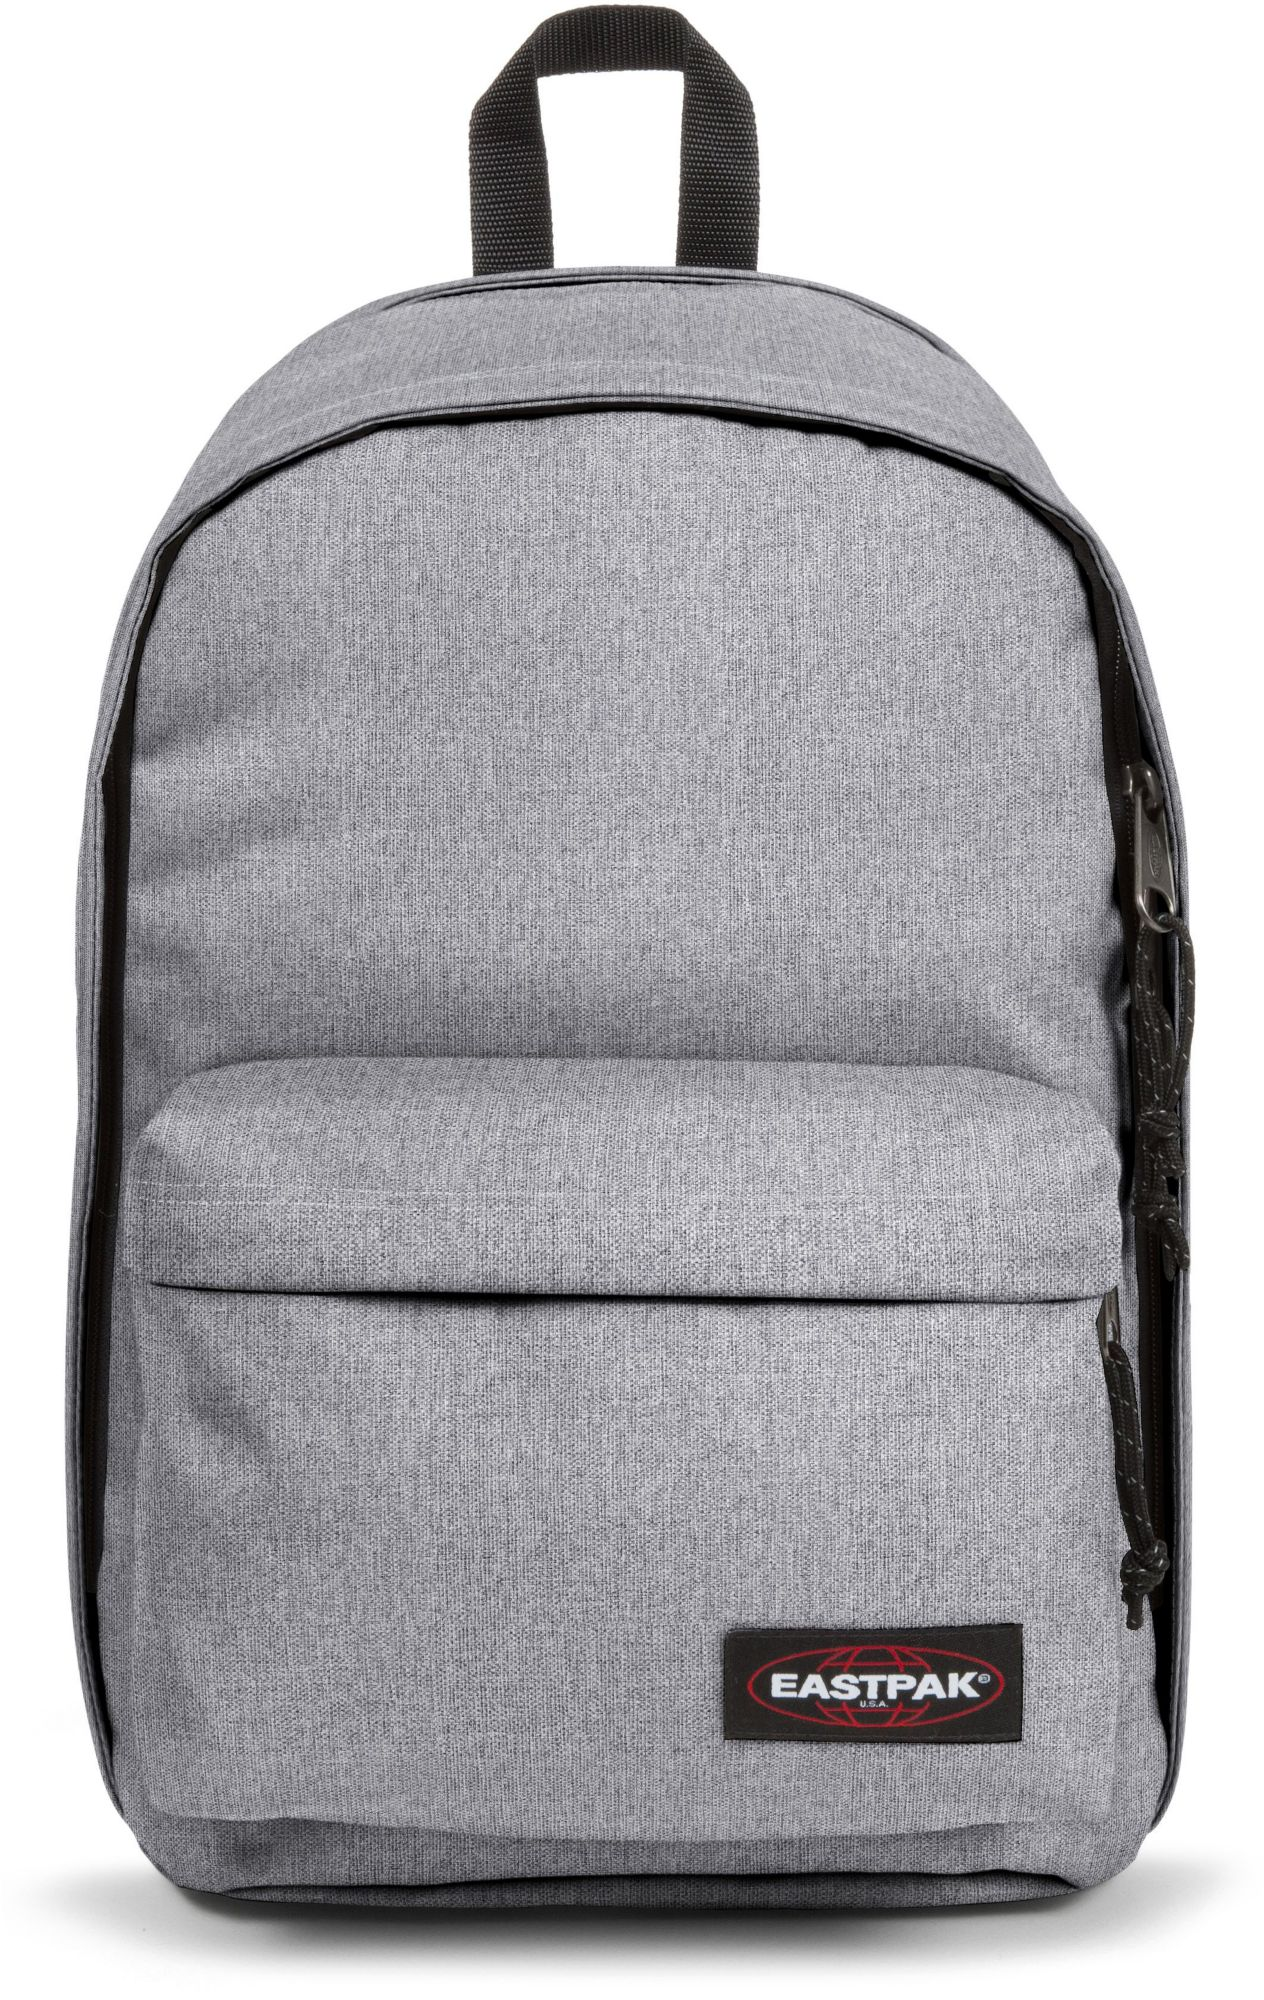 EASTPAK Eastpak Rucksack mit Laptopfach, »BACK TO WORK sunday grey«